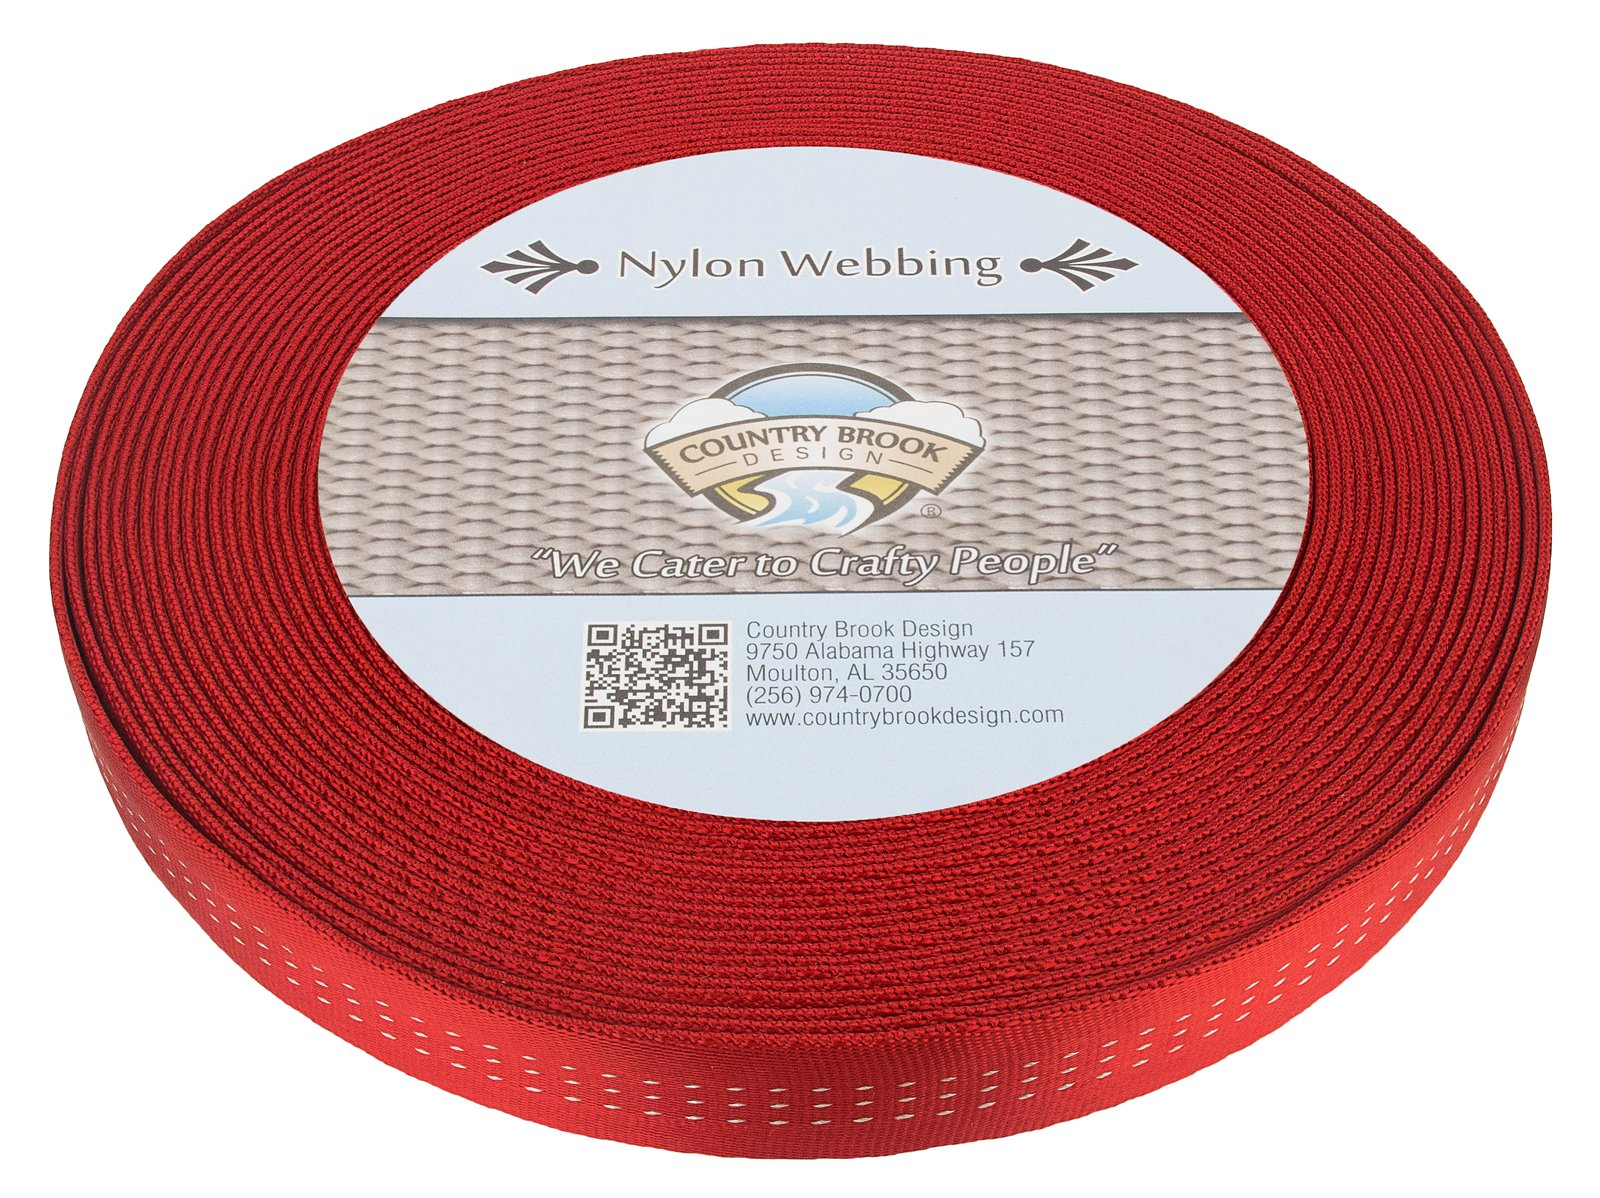 Country Brook Design 1 Inch Red Climbing Spec Tubular Nylon Webbing, 100 Yards